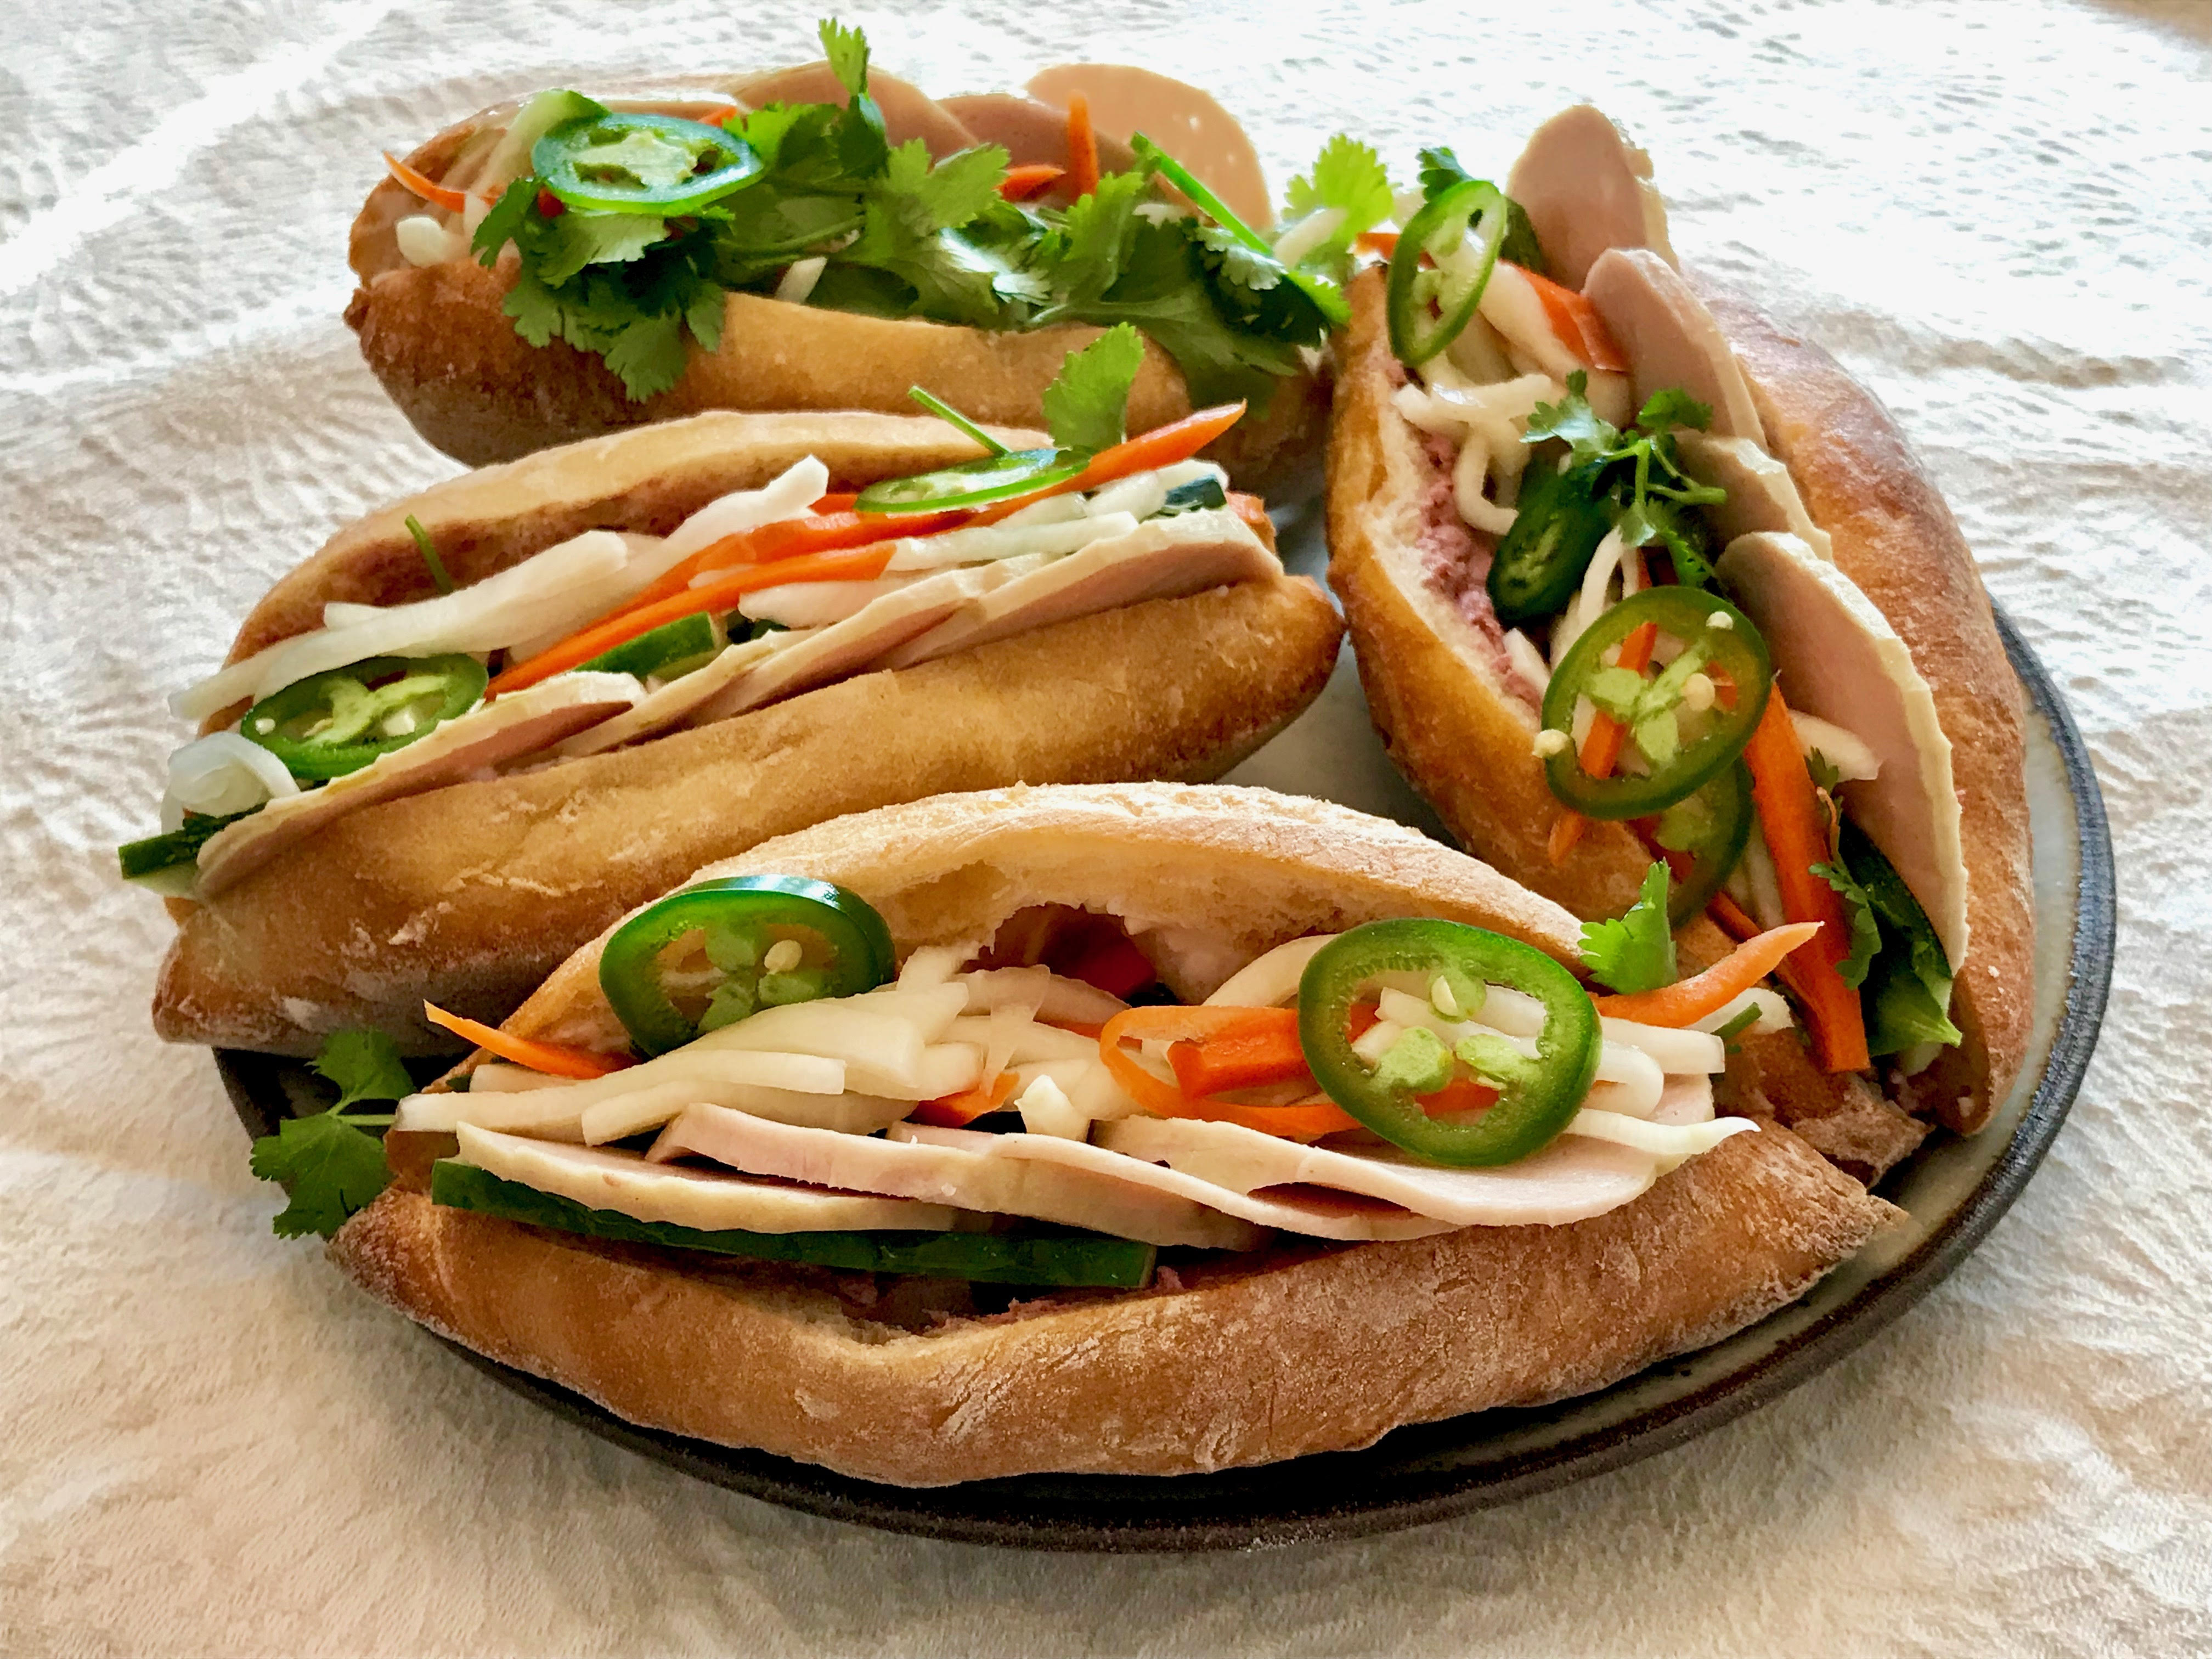 A Vietnamese Immigrant Wants to Bring Great Banh Mi to Berkeley